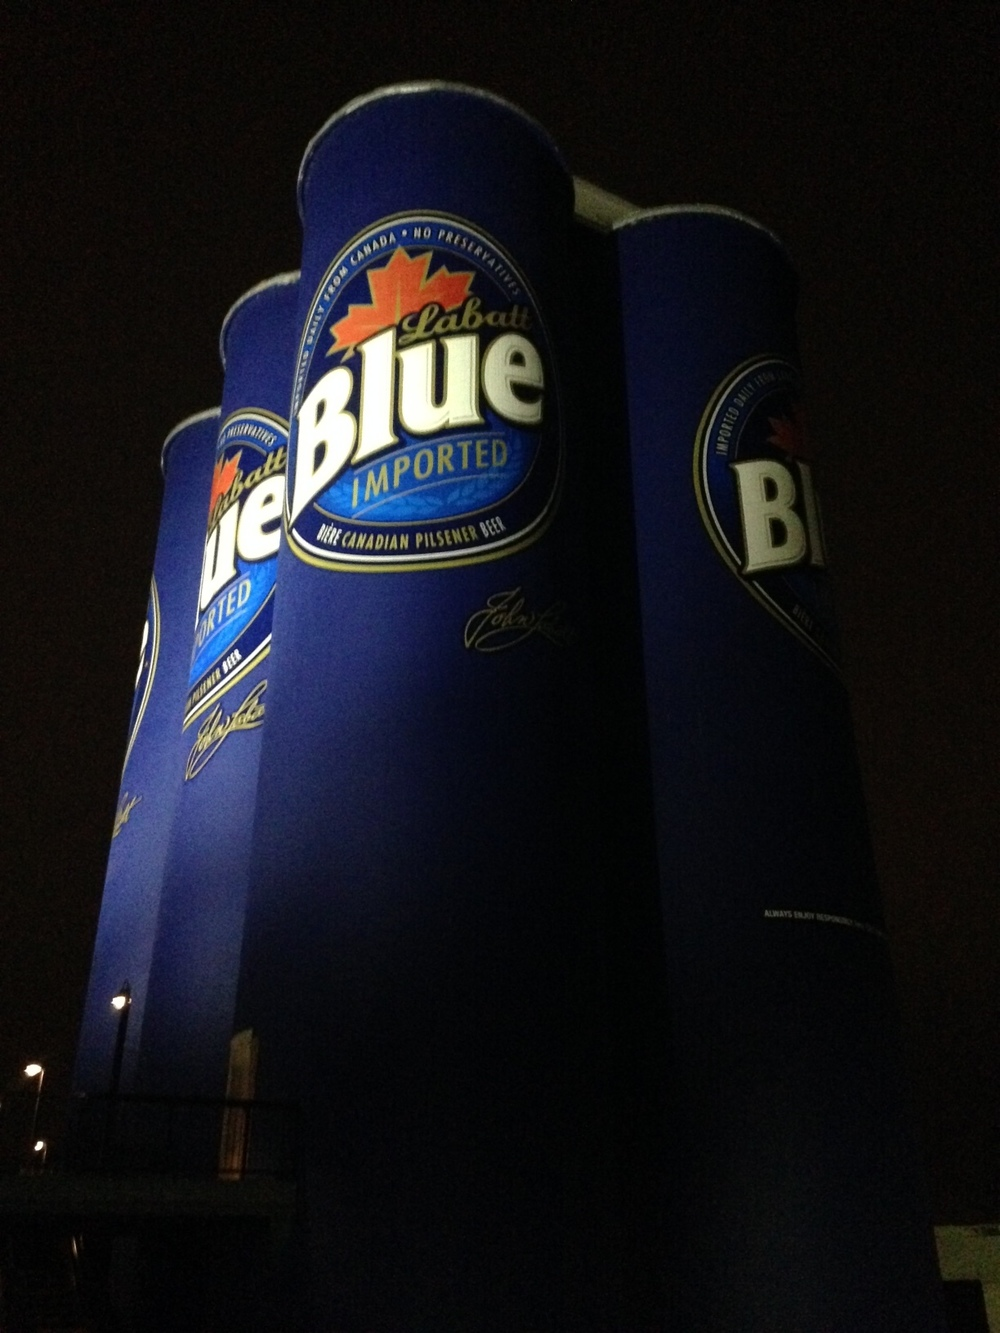 Knox: Now this is a drink!These Labatt Blue Cans are abandoned grain elevator silos 10 storeys tall and are part of Riverworks sports oriented entertainment complex. RW